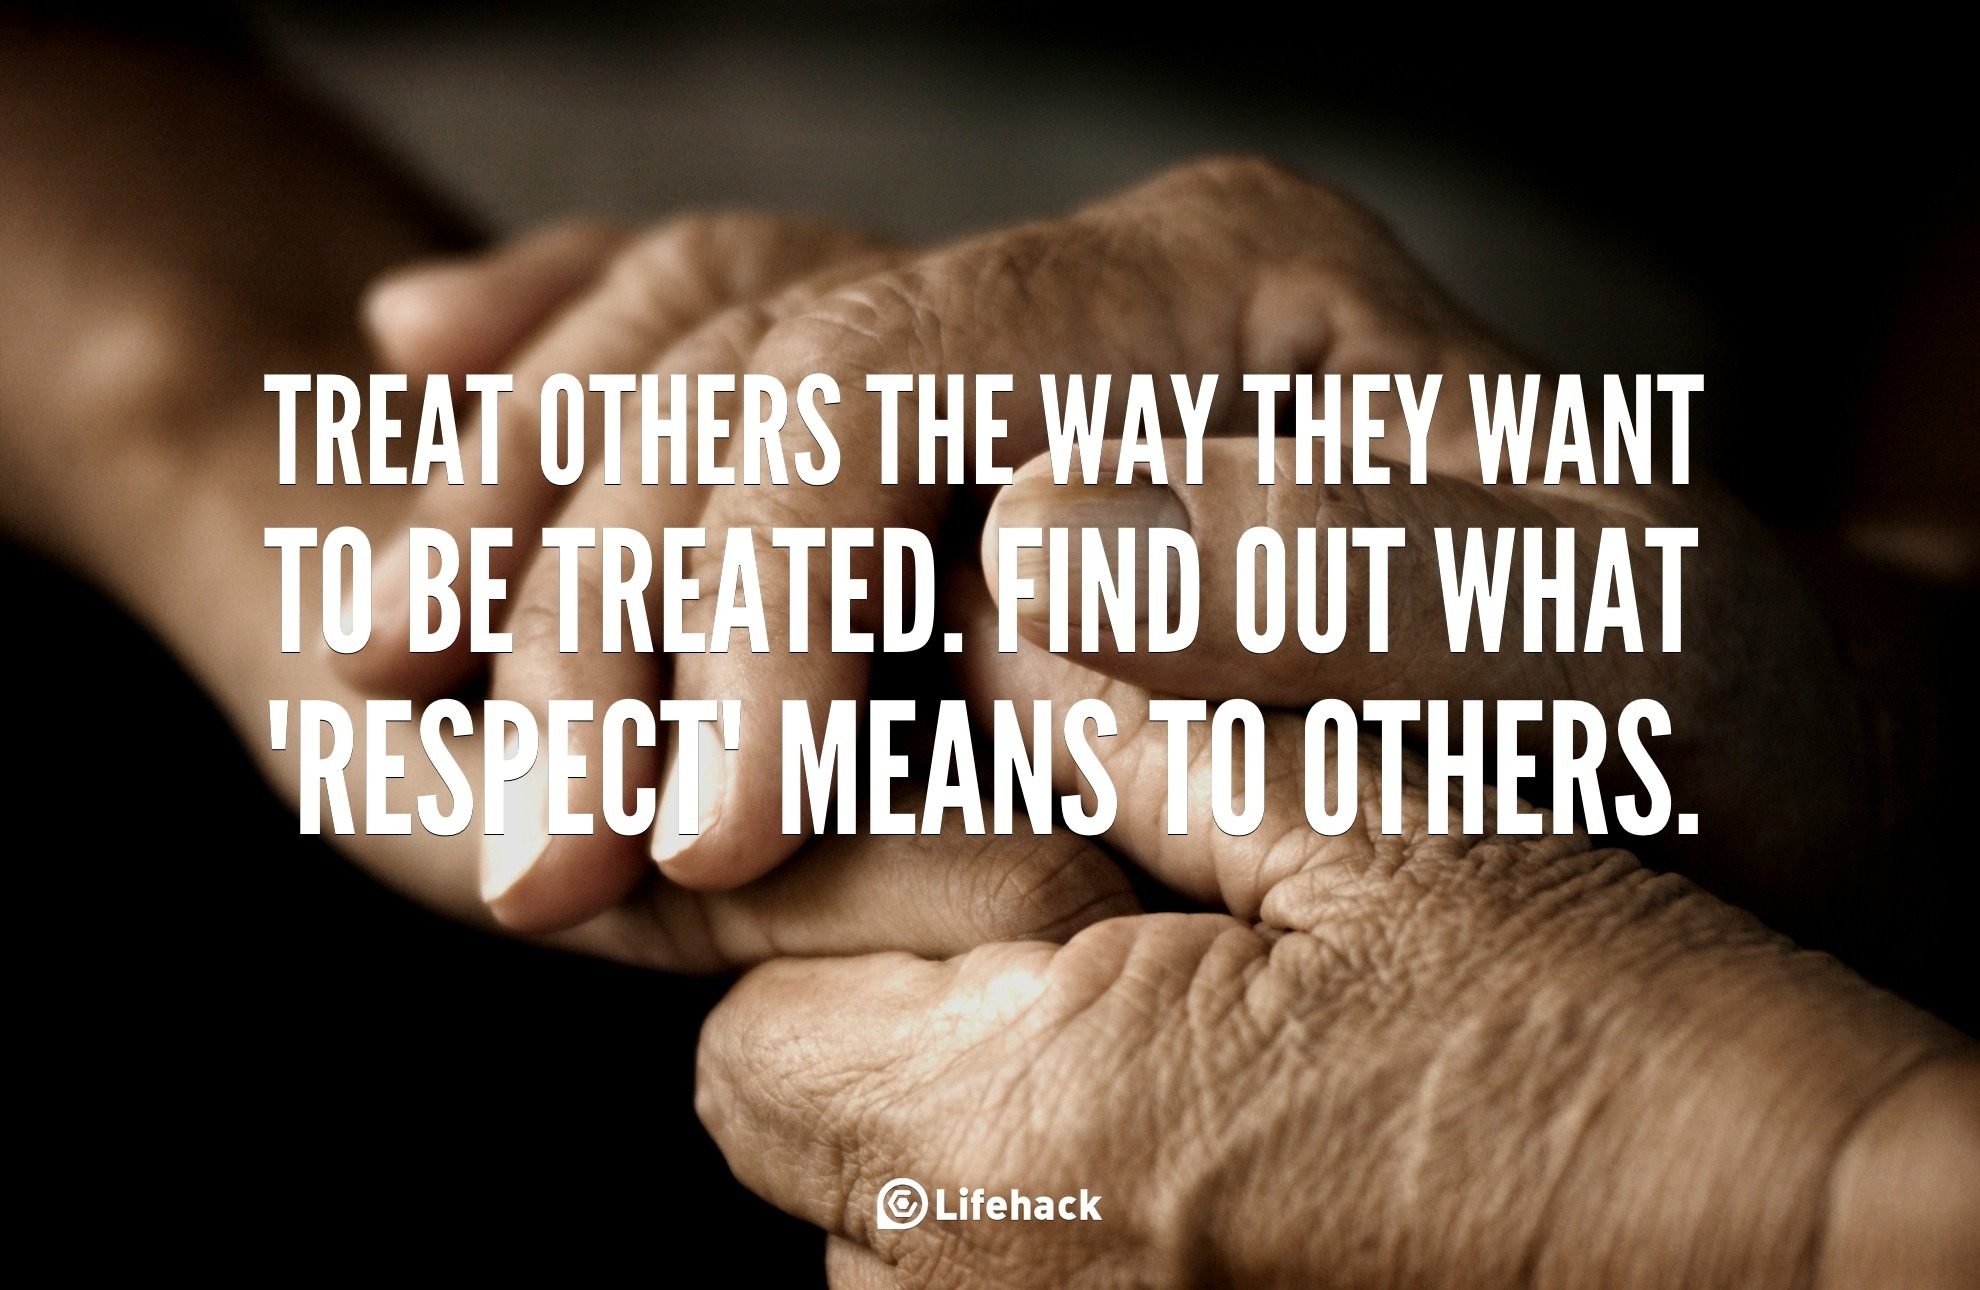 Coaching Quotes Wallpaper 30sec Tip Treat Others The Way They Want To Be Treated